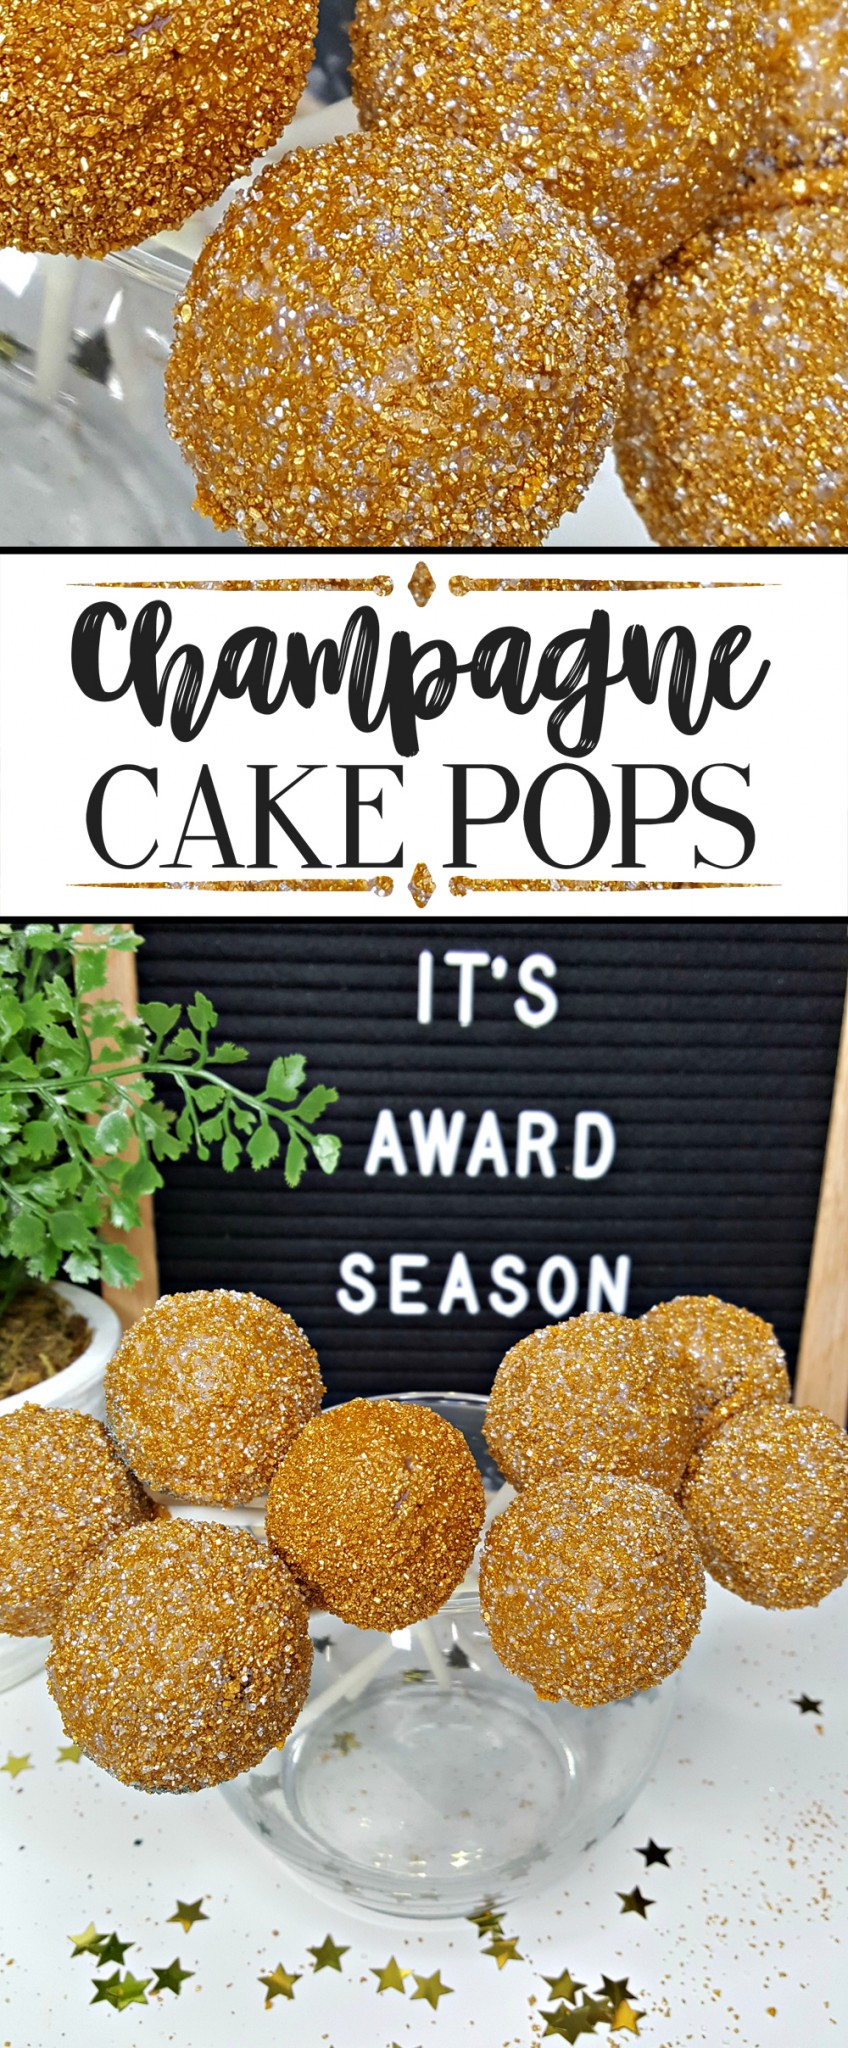 Champagne Cake Pops - PERFECT for all of those fun grown-up events you have! Weddings, Bridal Showers, Birthday Parties, Award Parties